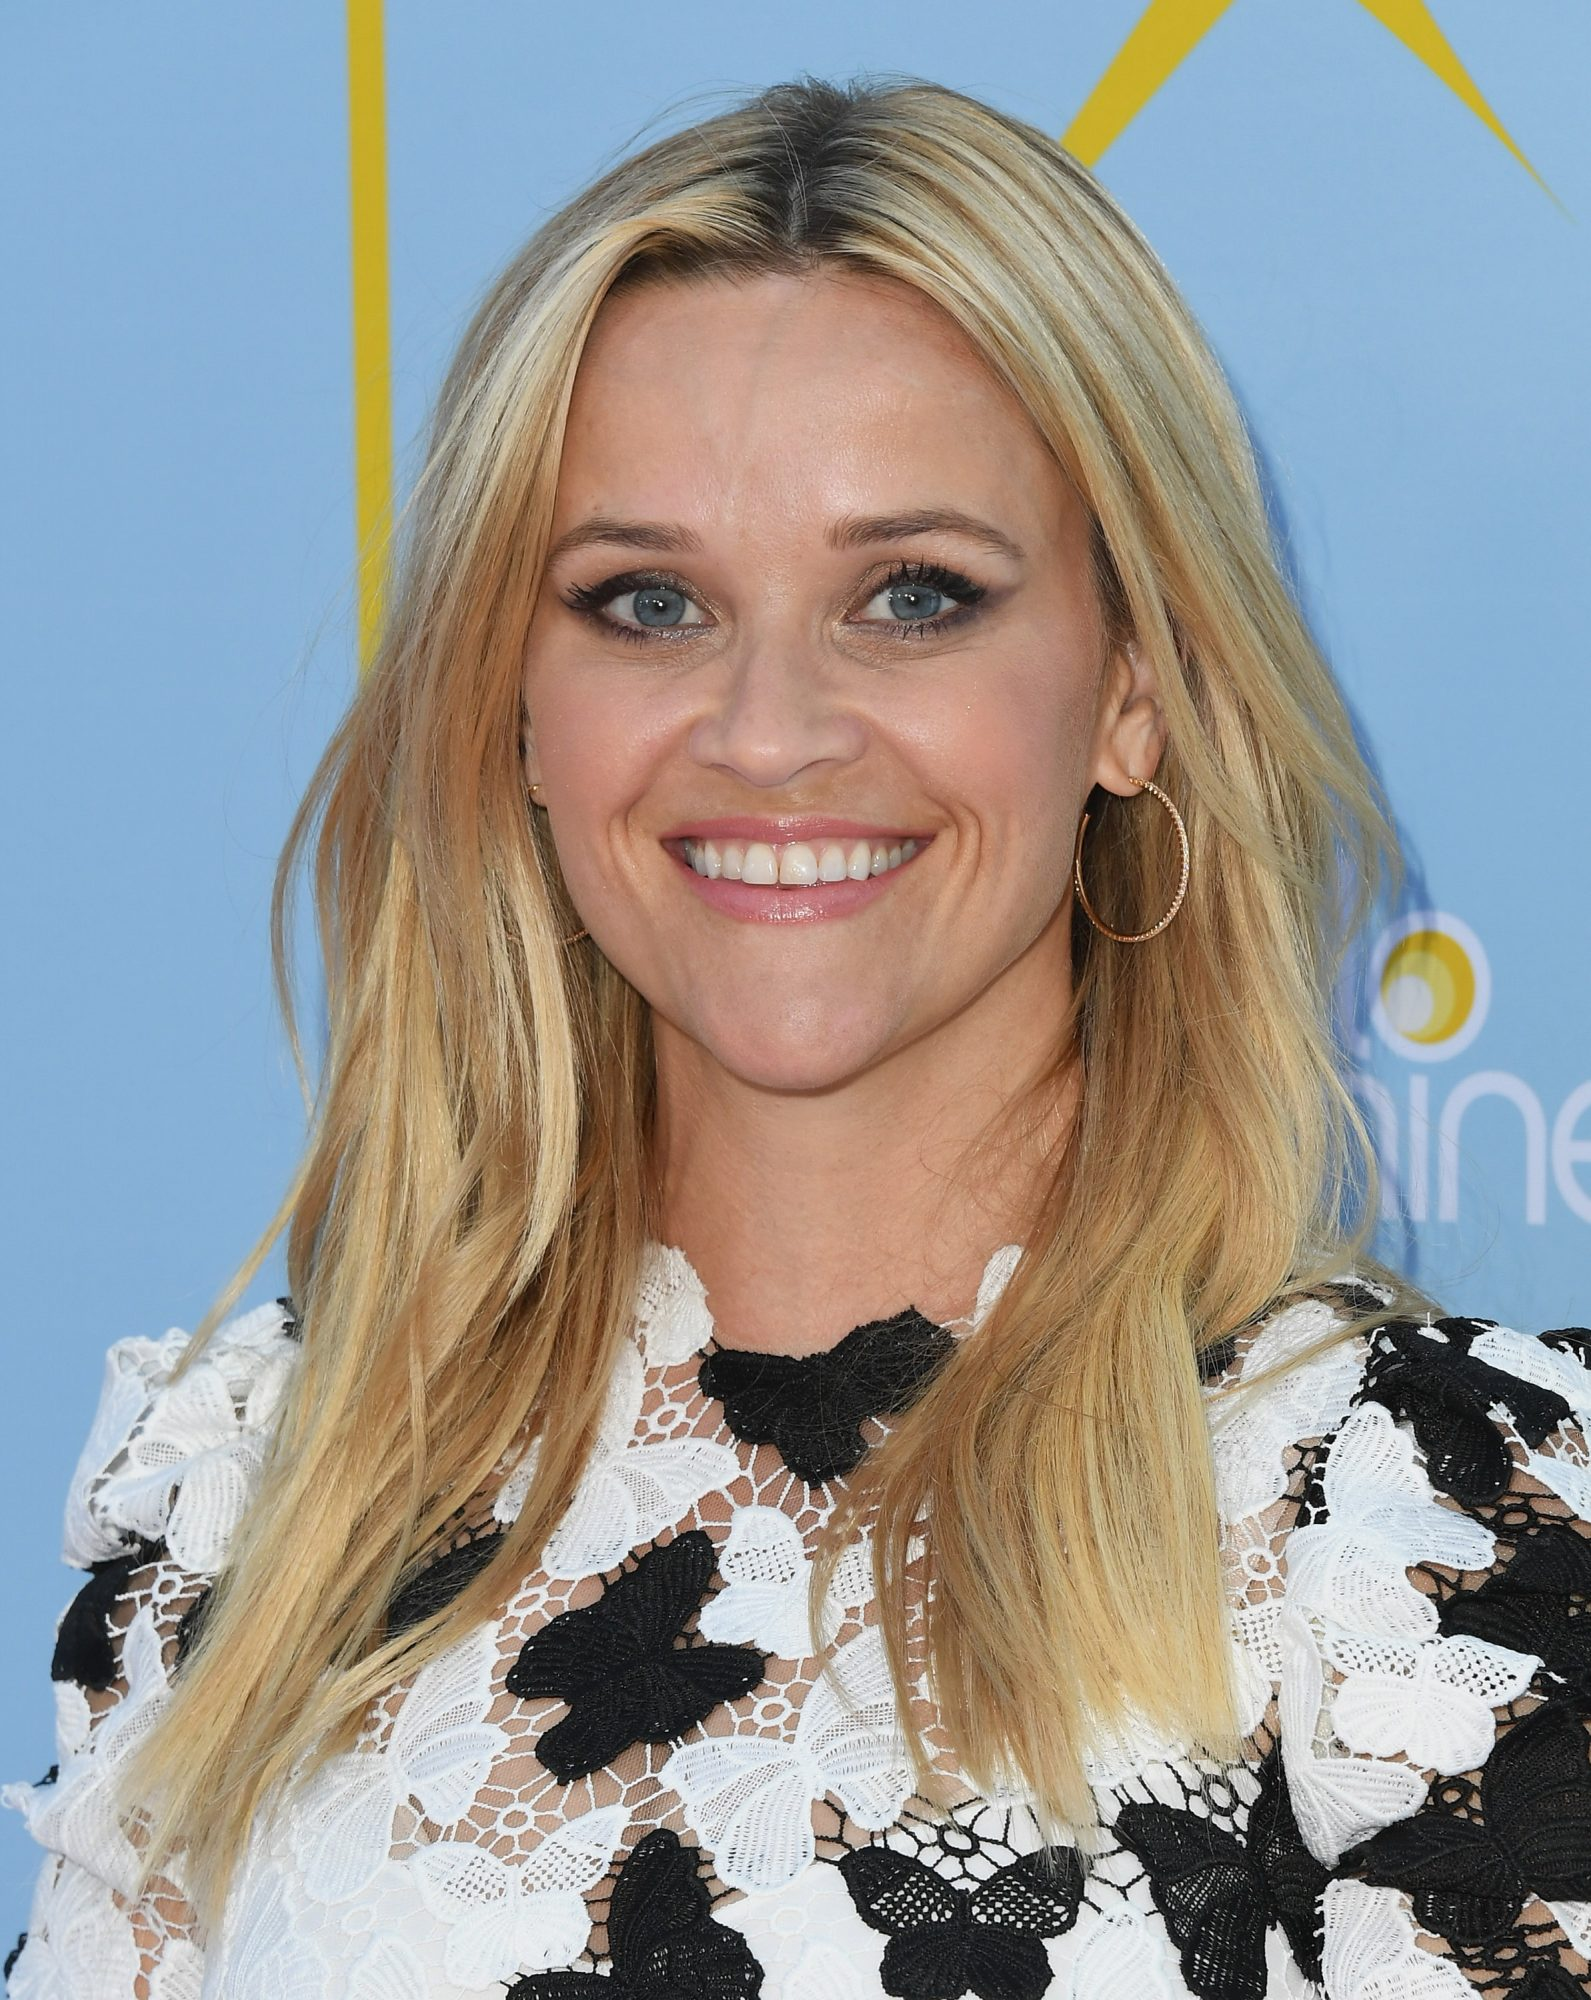 Reese Witherspoon National Sons Day